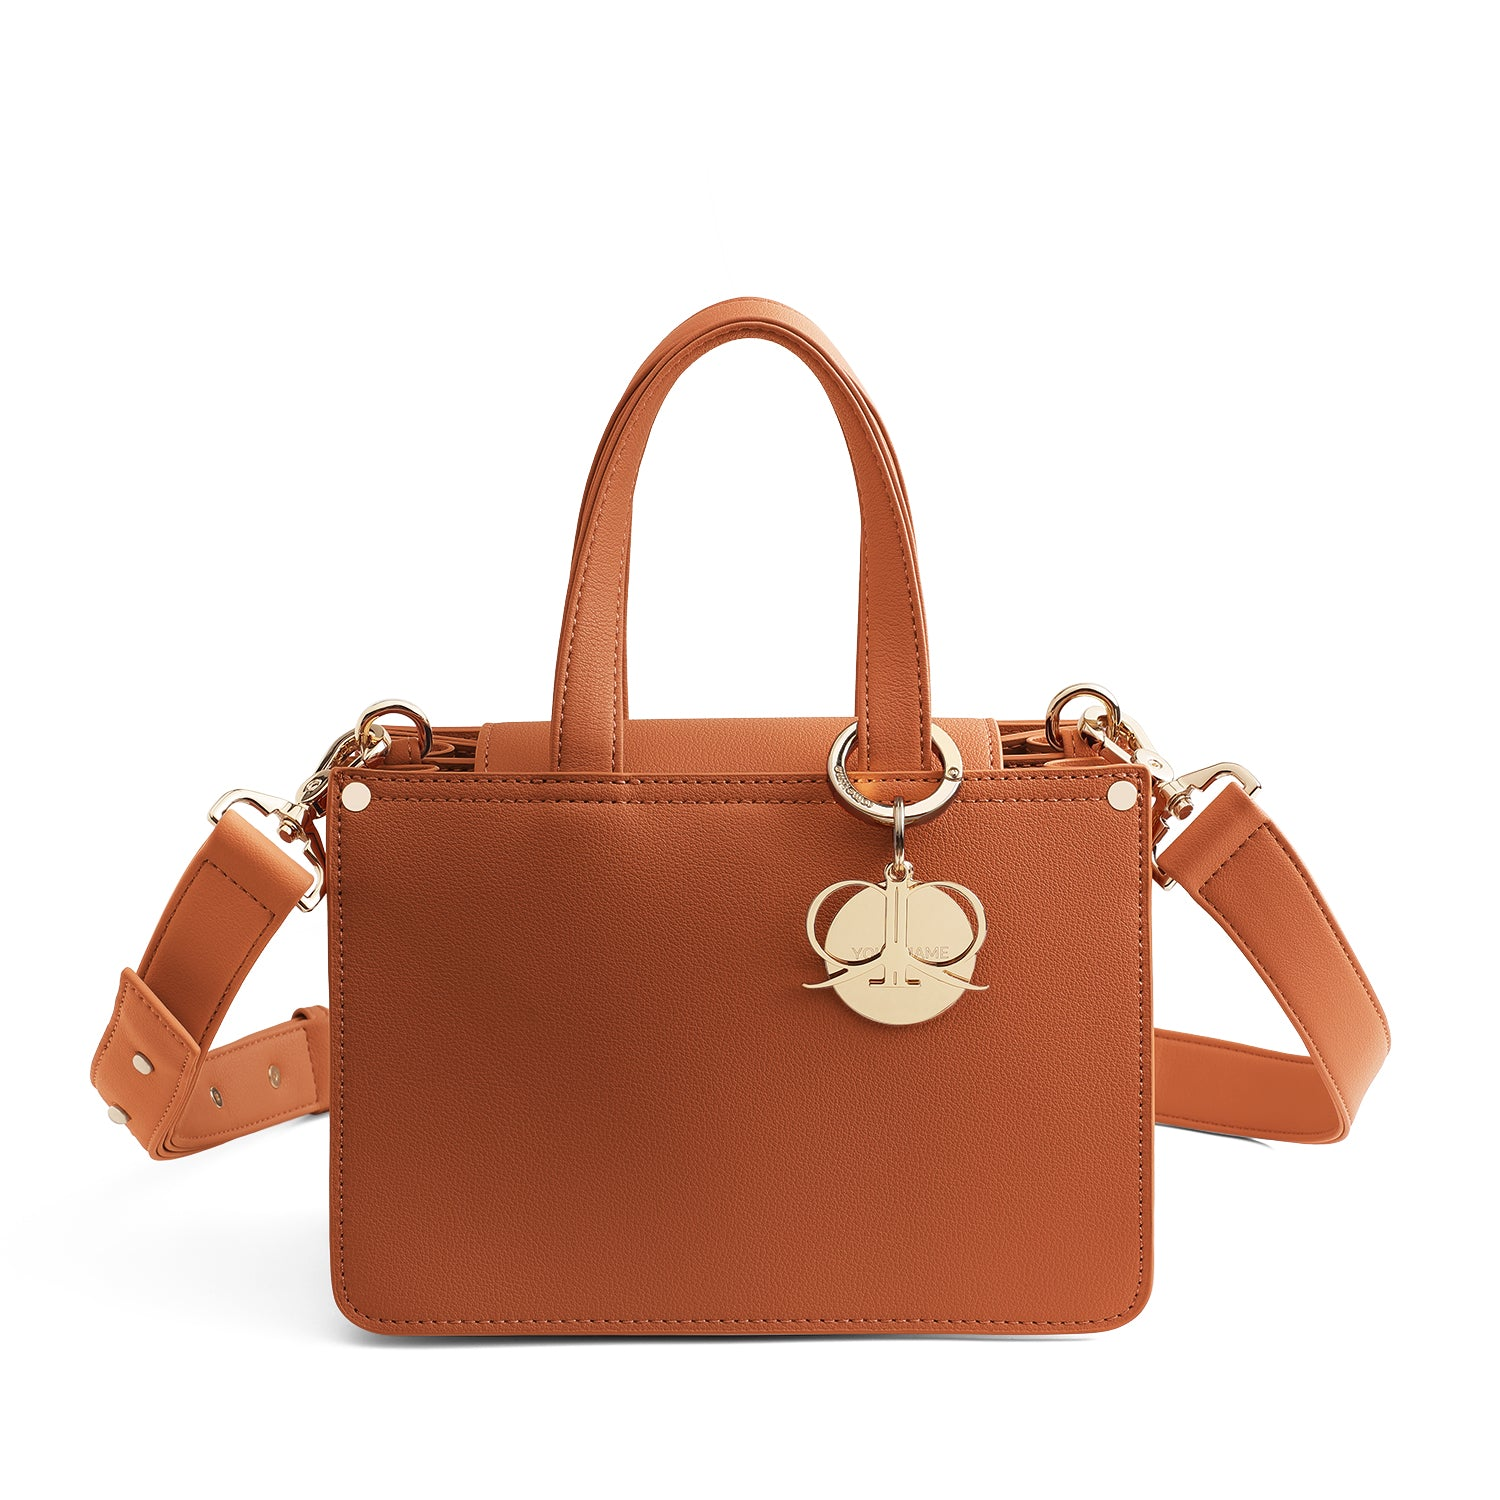 RR Bag 2 - Dark Orange